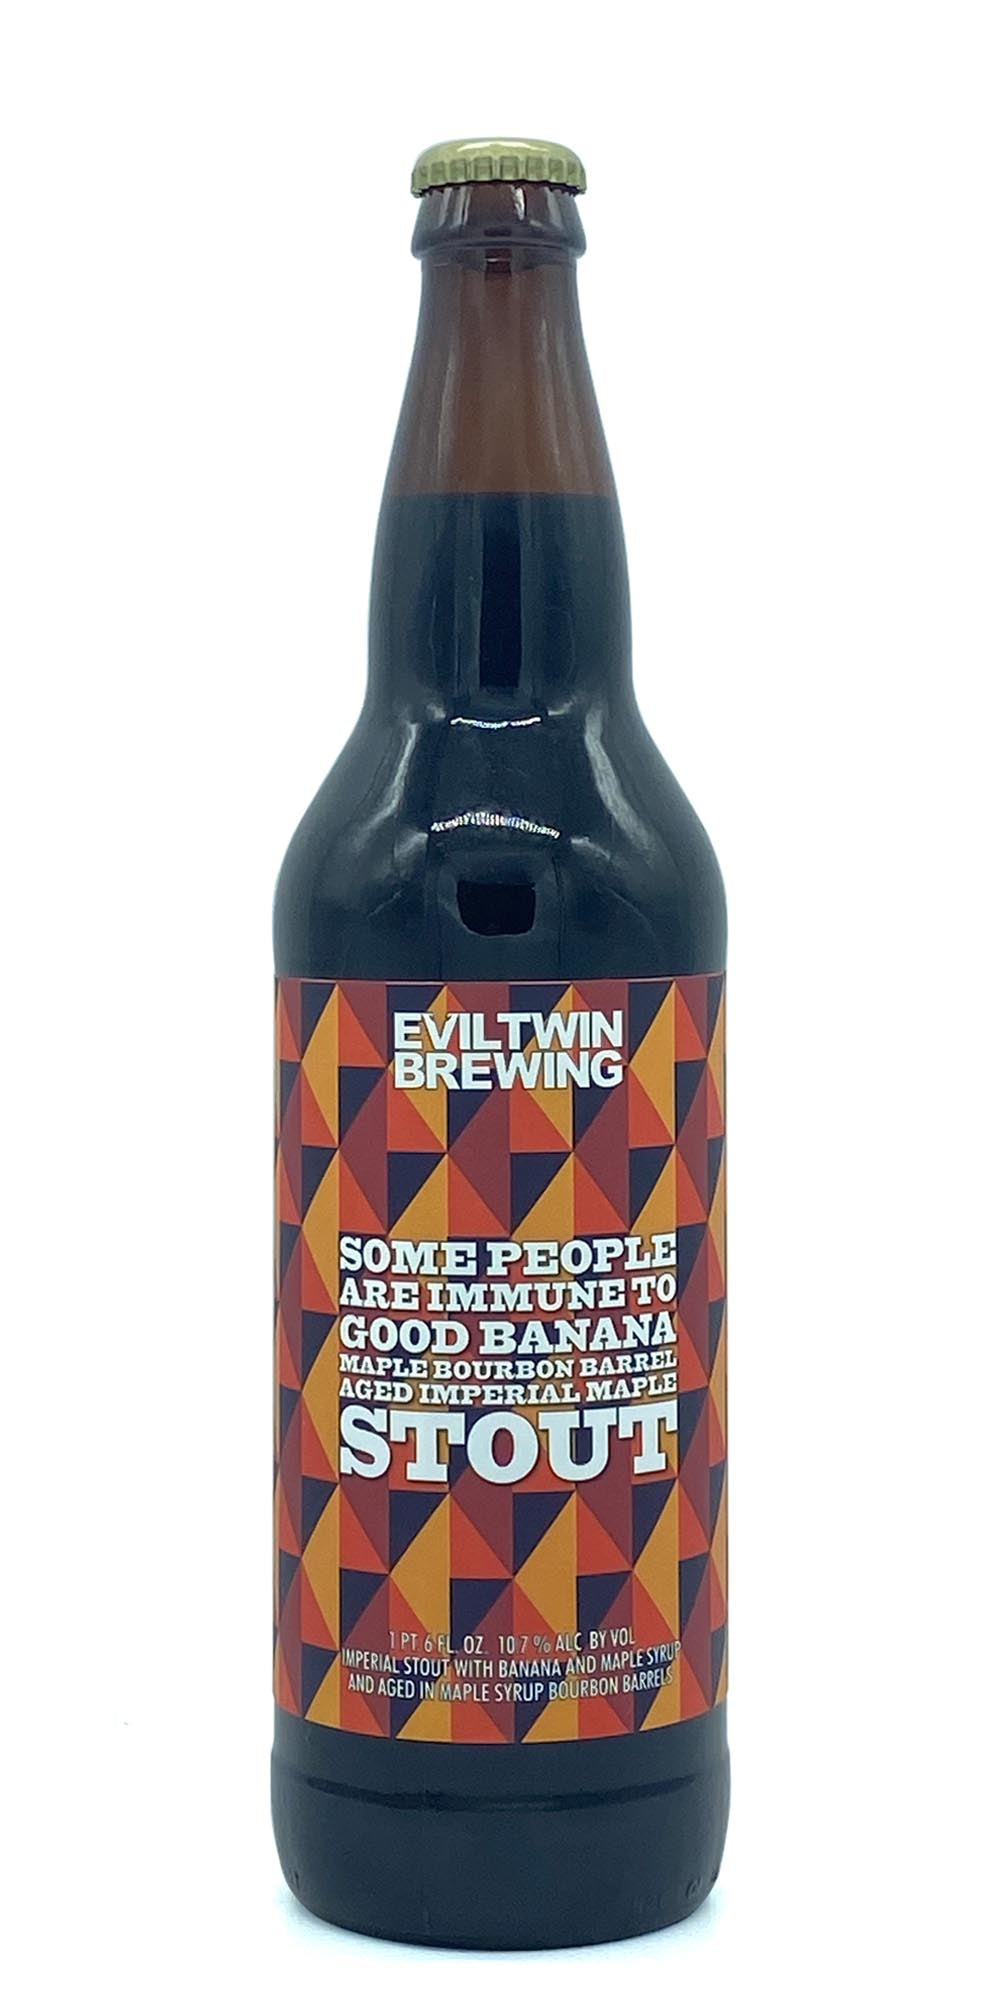 Evil Twin Brewing - Some People Are Immune to Good Banana